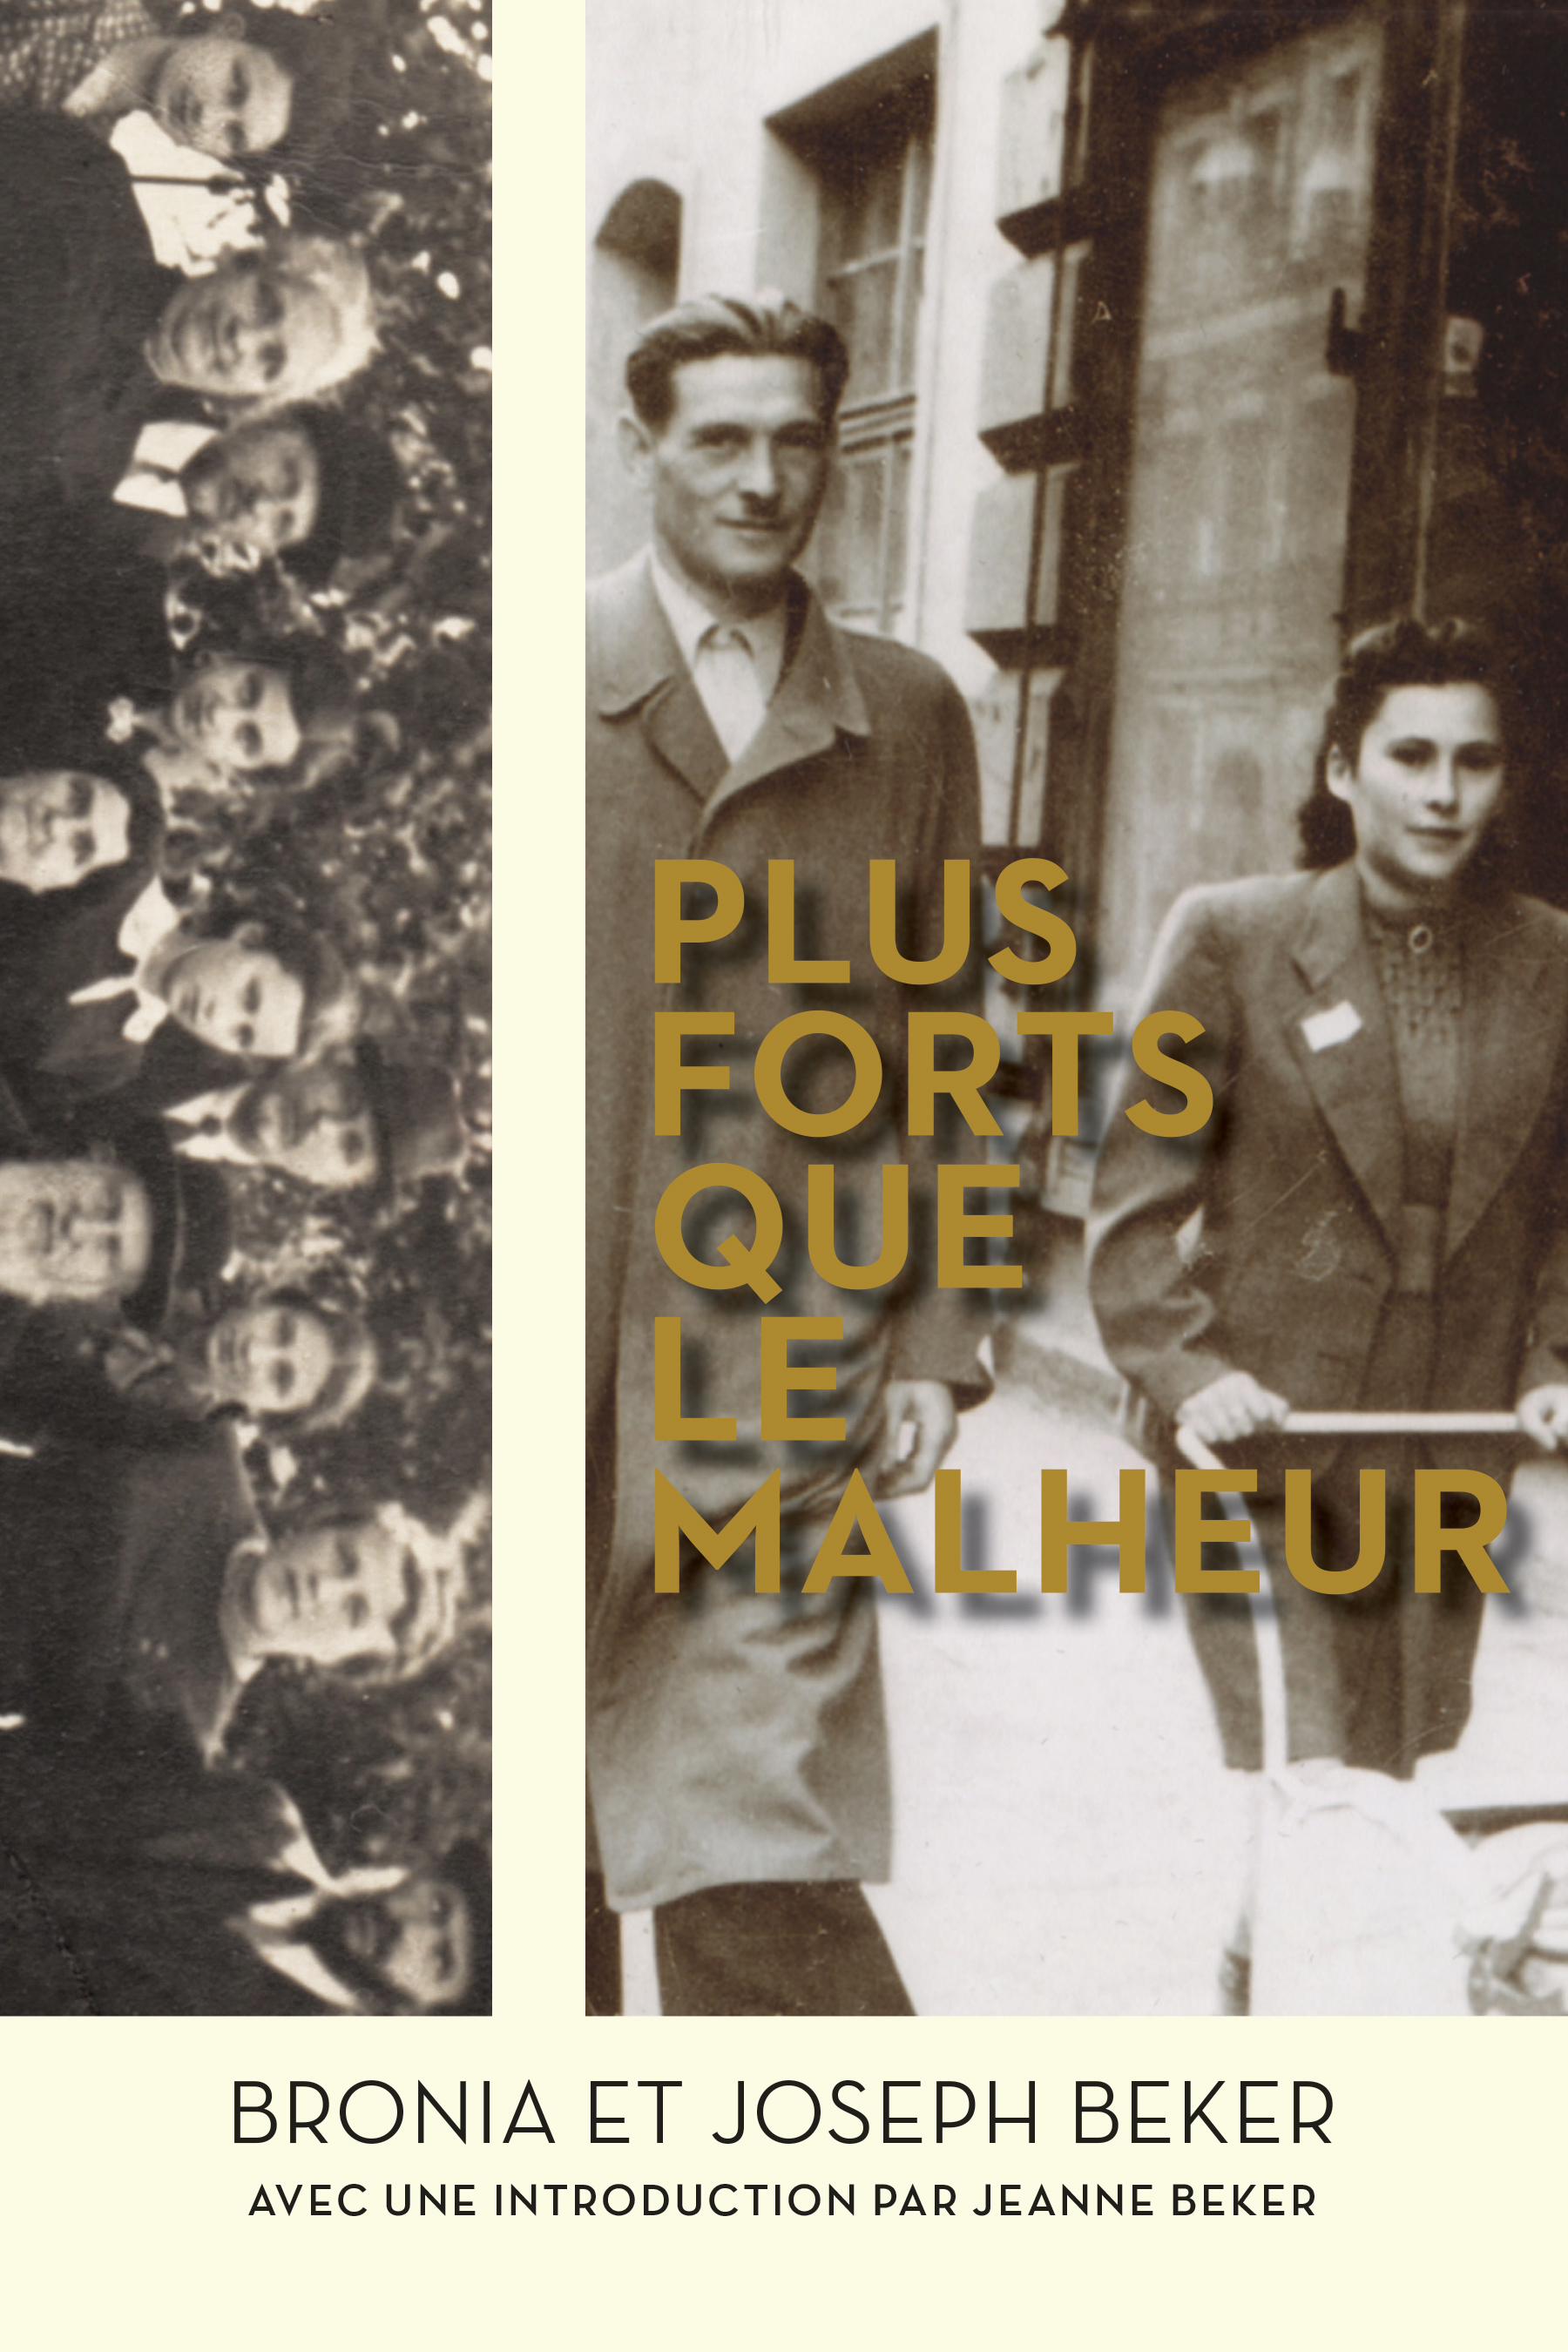 Plus forts que le malheur book cover